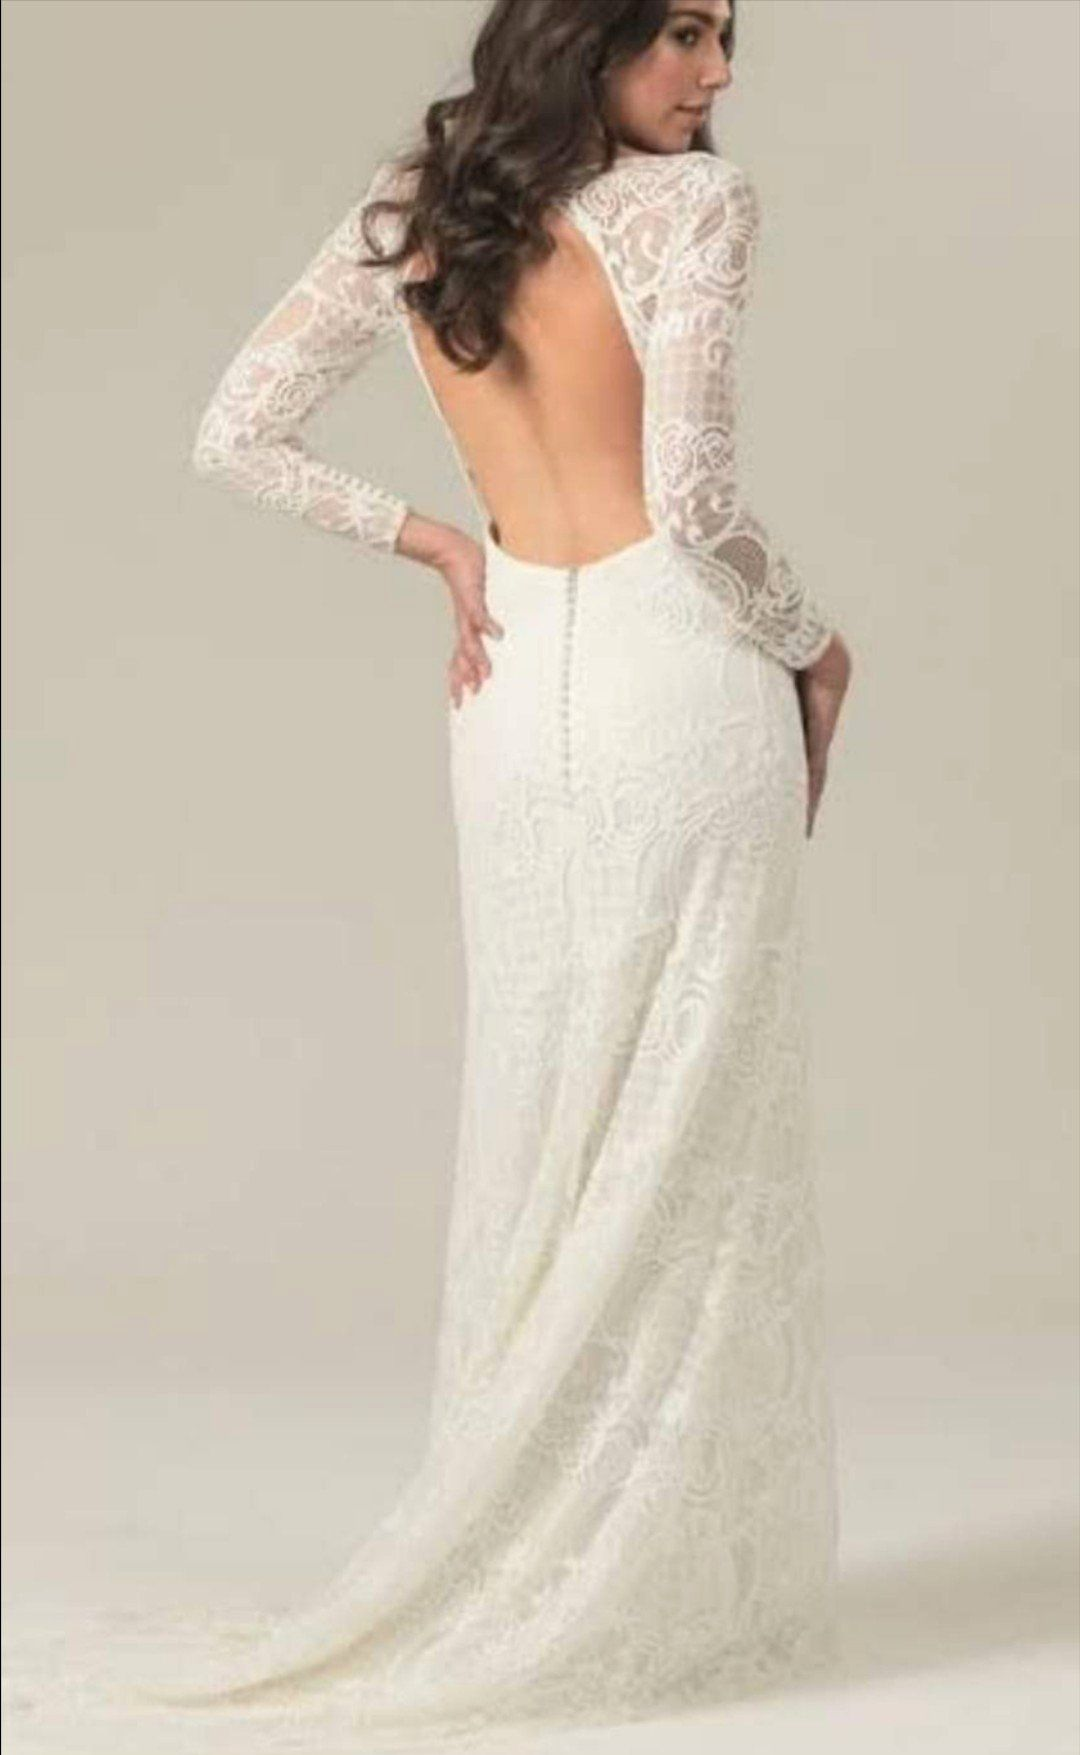 Bridal Gown Shops Near Me Elegant Who Buys Second Hand Wedding Dresses Near Me R In 2020 Keyhole Back Wedding Dress Bohemian Wedding Dress Designers Back Wedding Dress